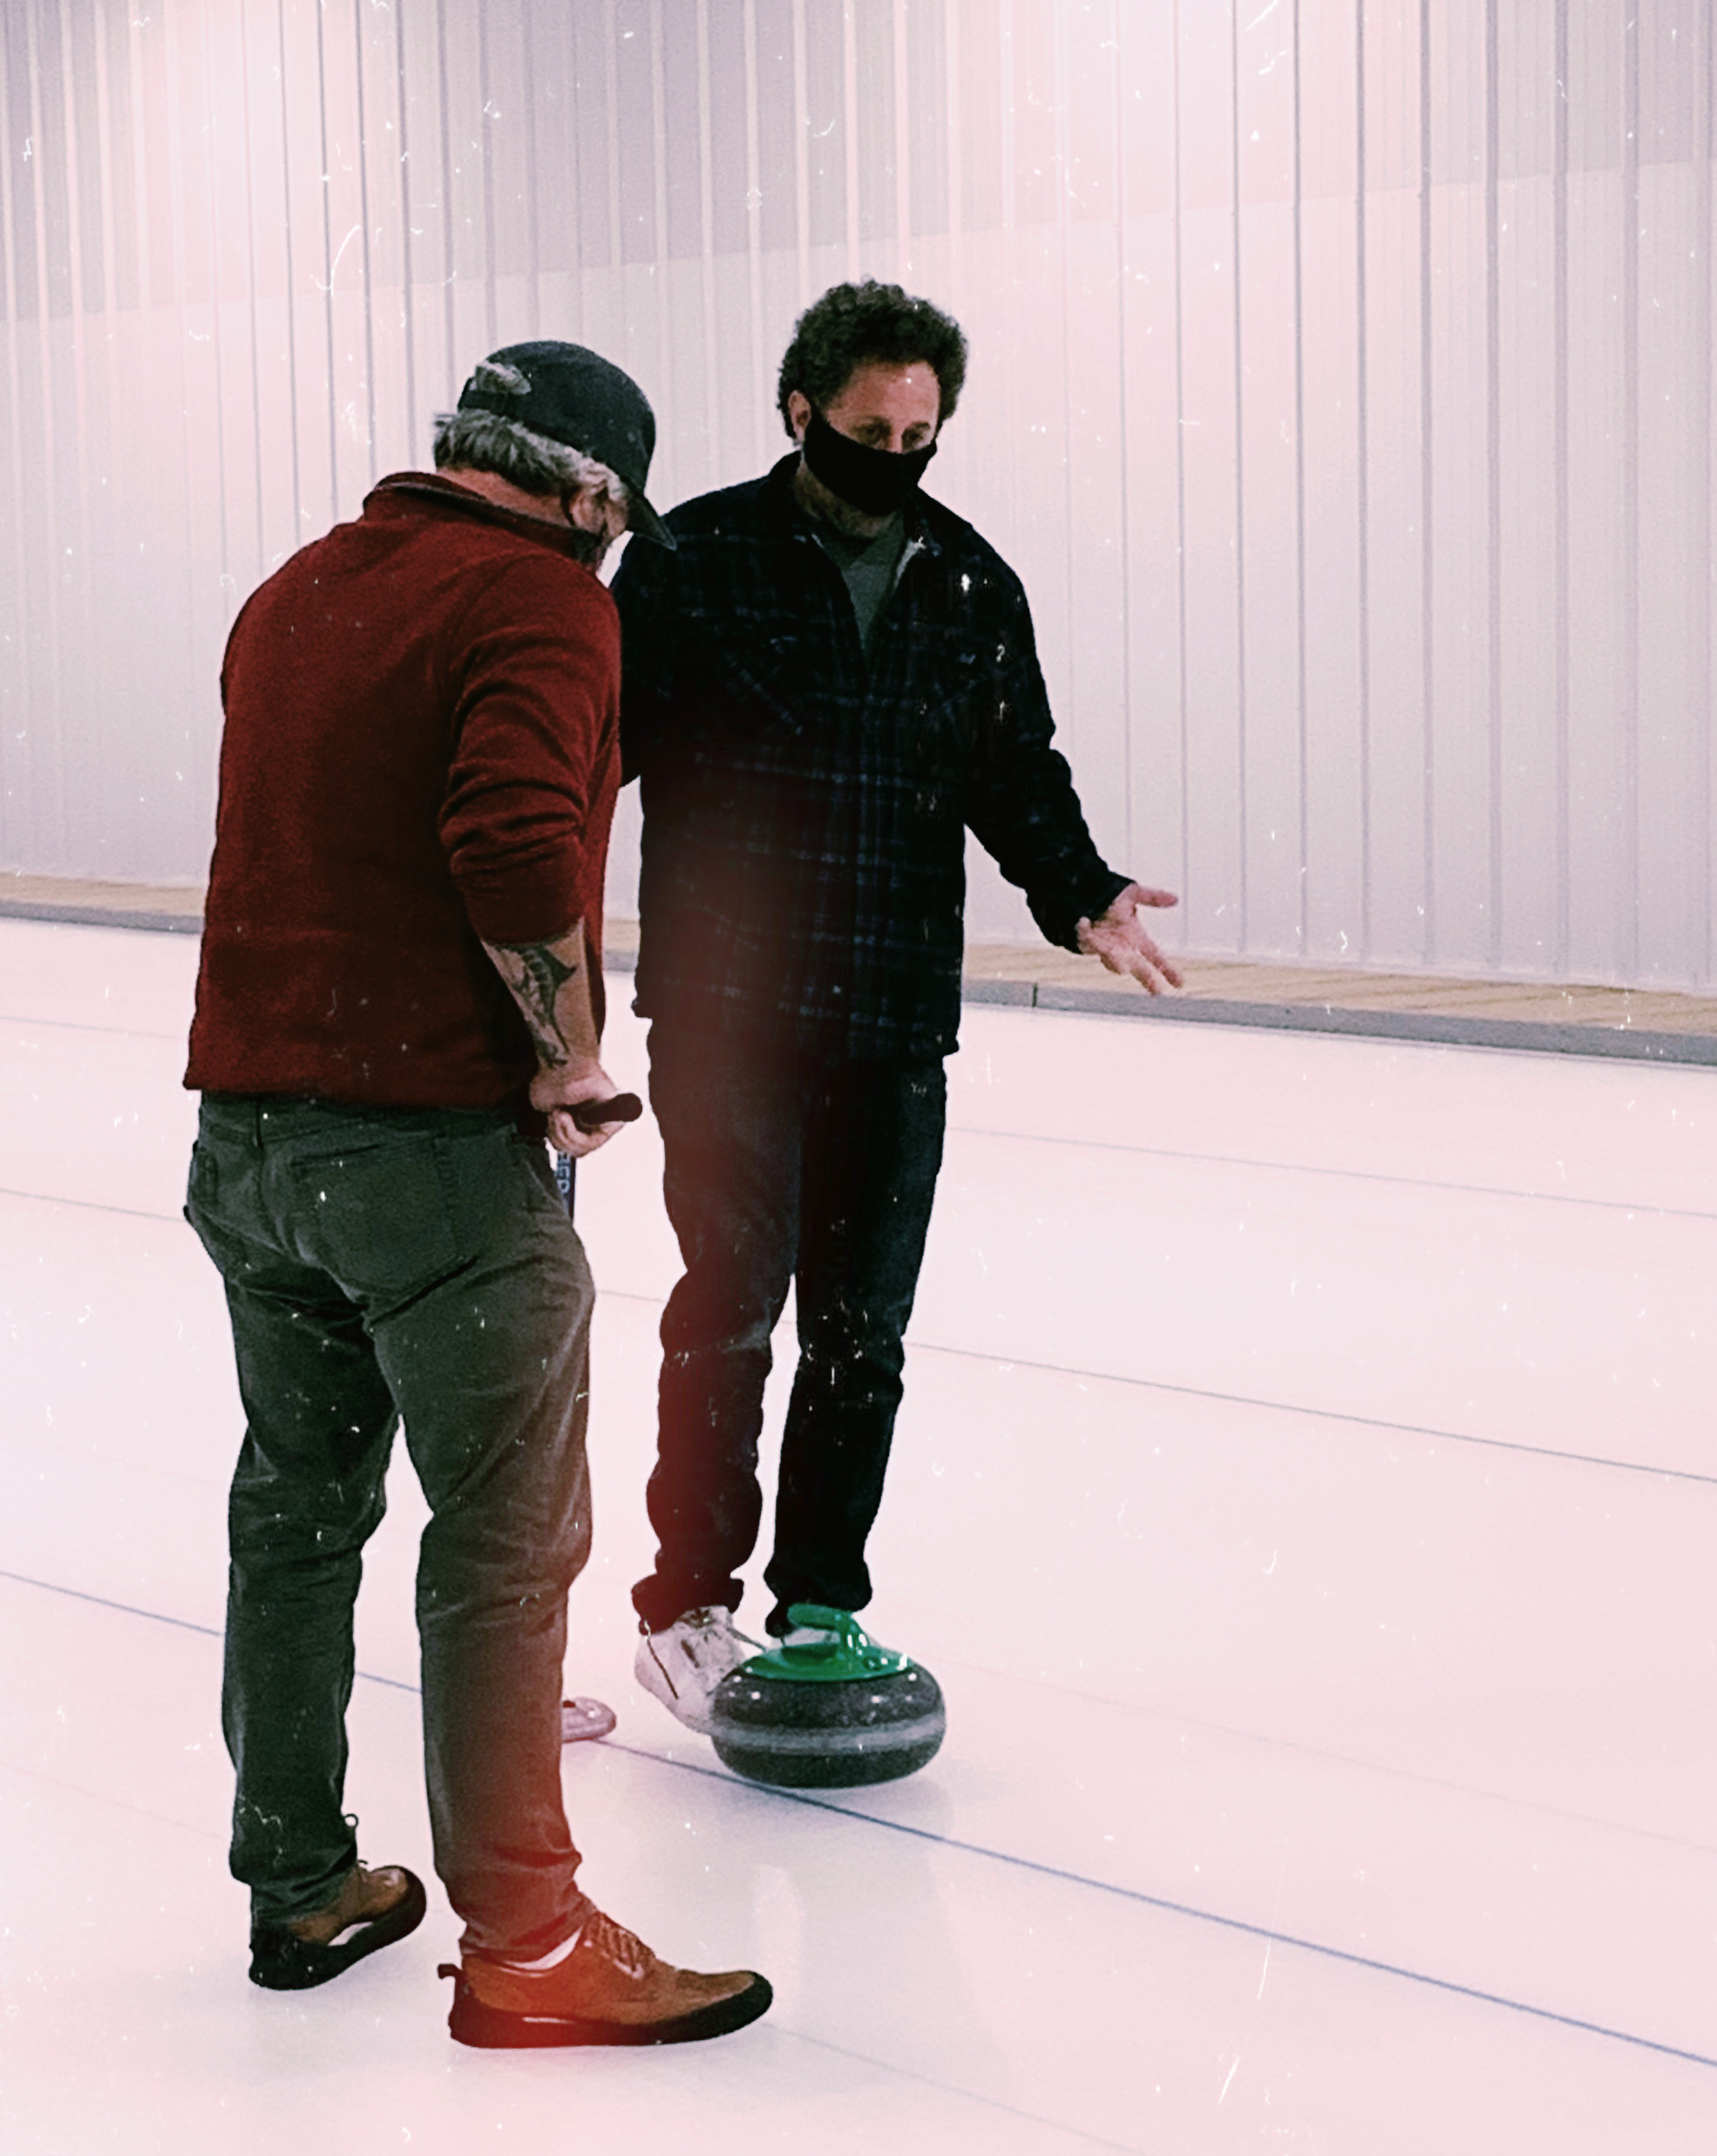 man teaching other man how to curl